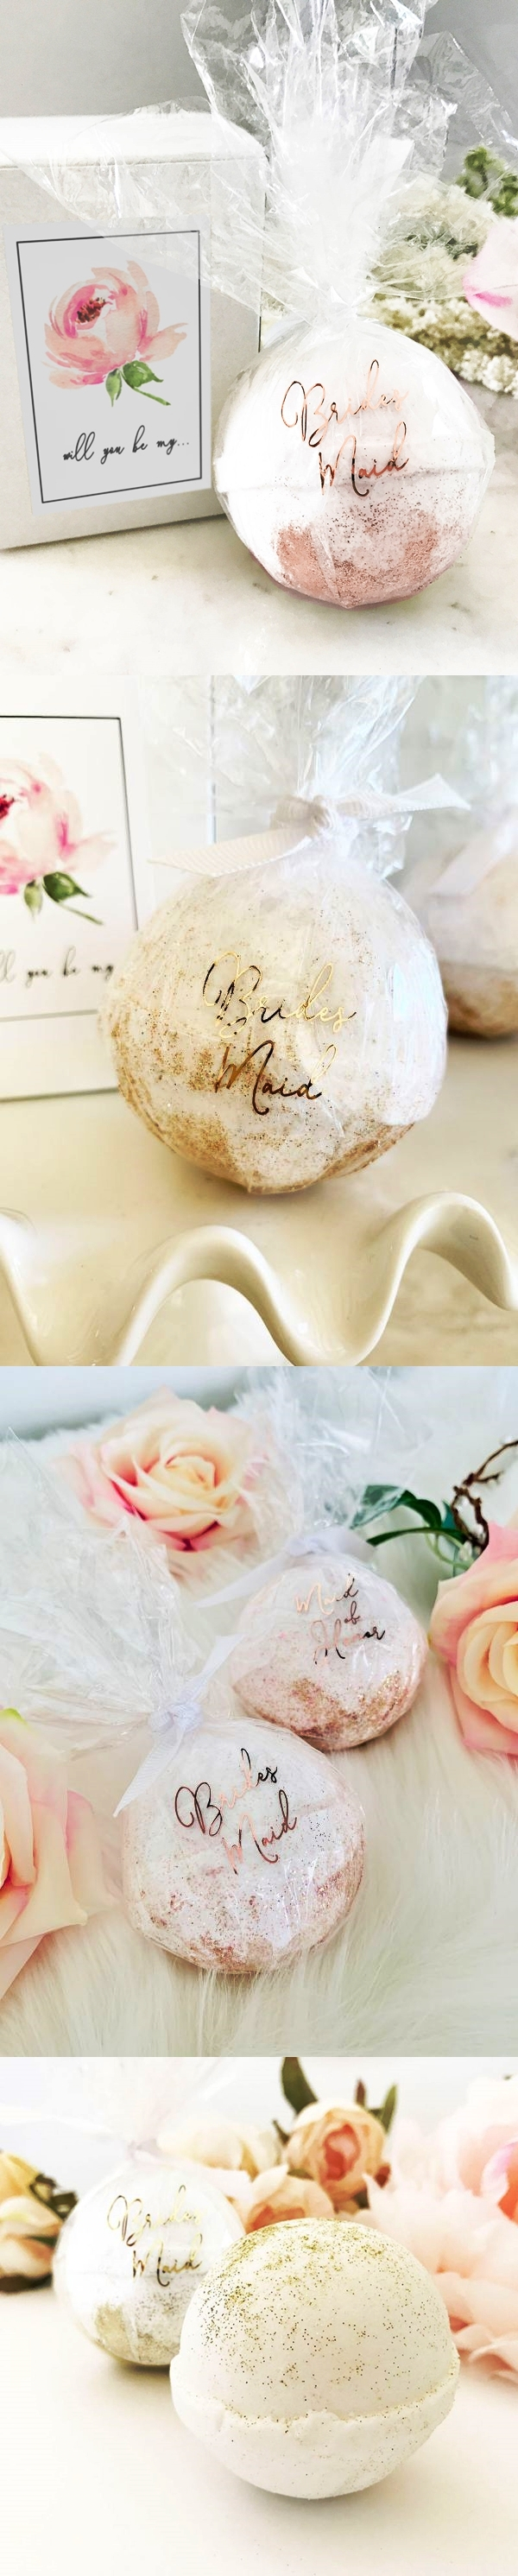 Event Blossom Bridal Party Proposal Bath Bomb in Rose Design Gift-Box